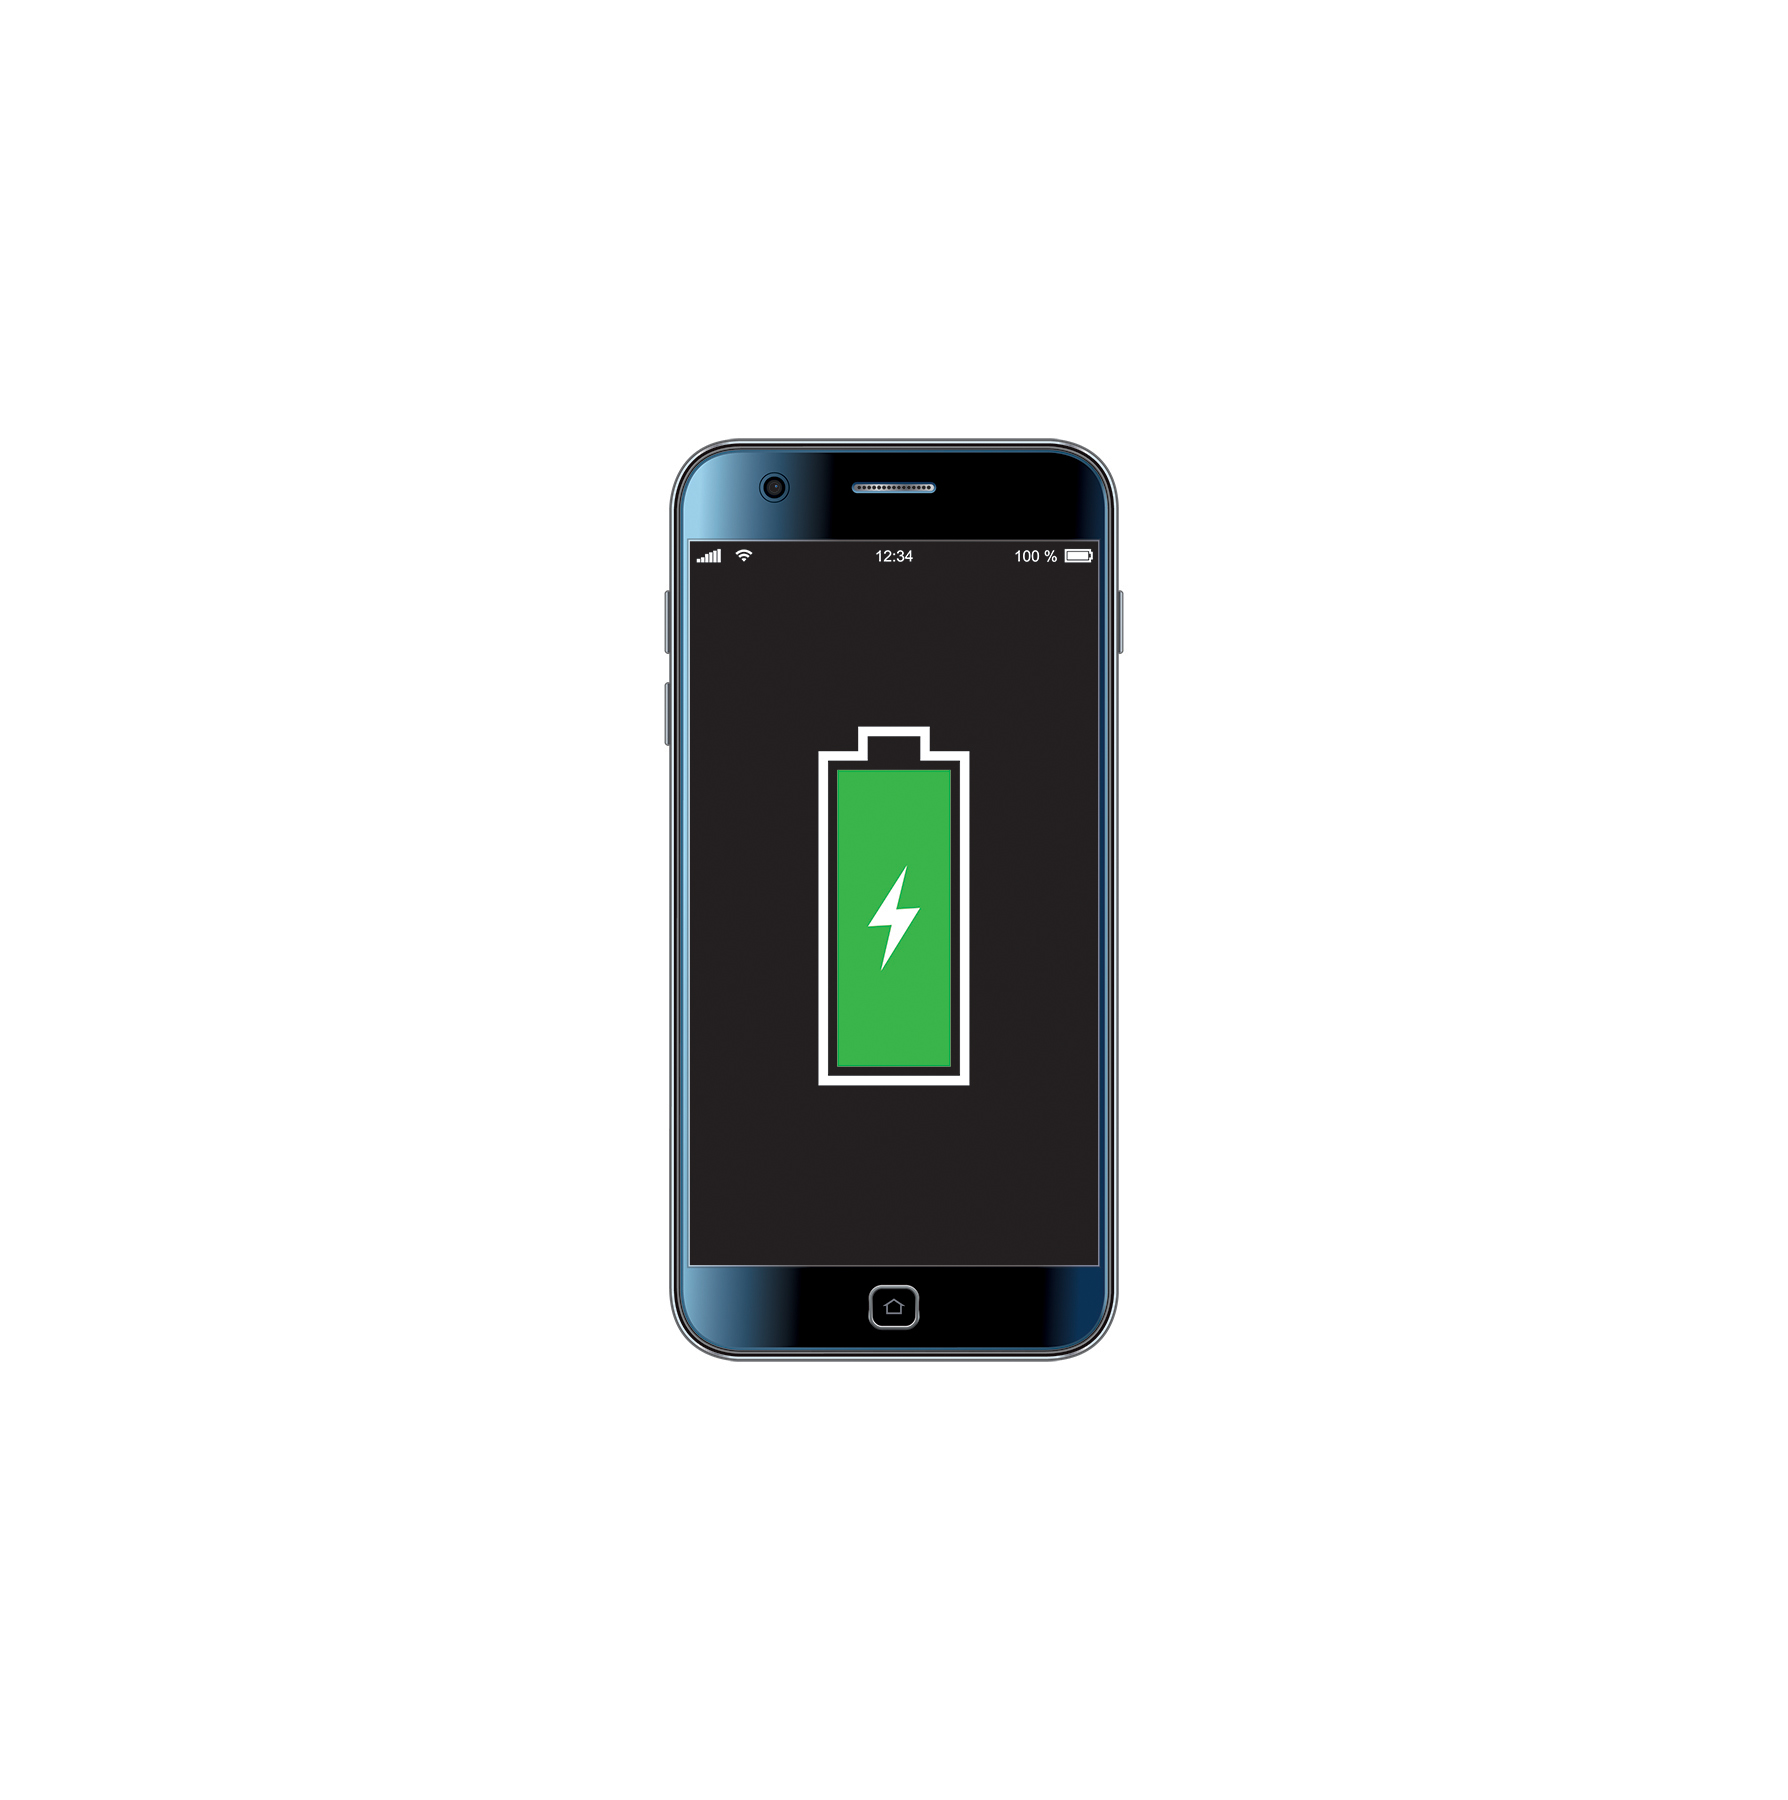 Illustration: Phone with full battery